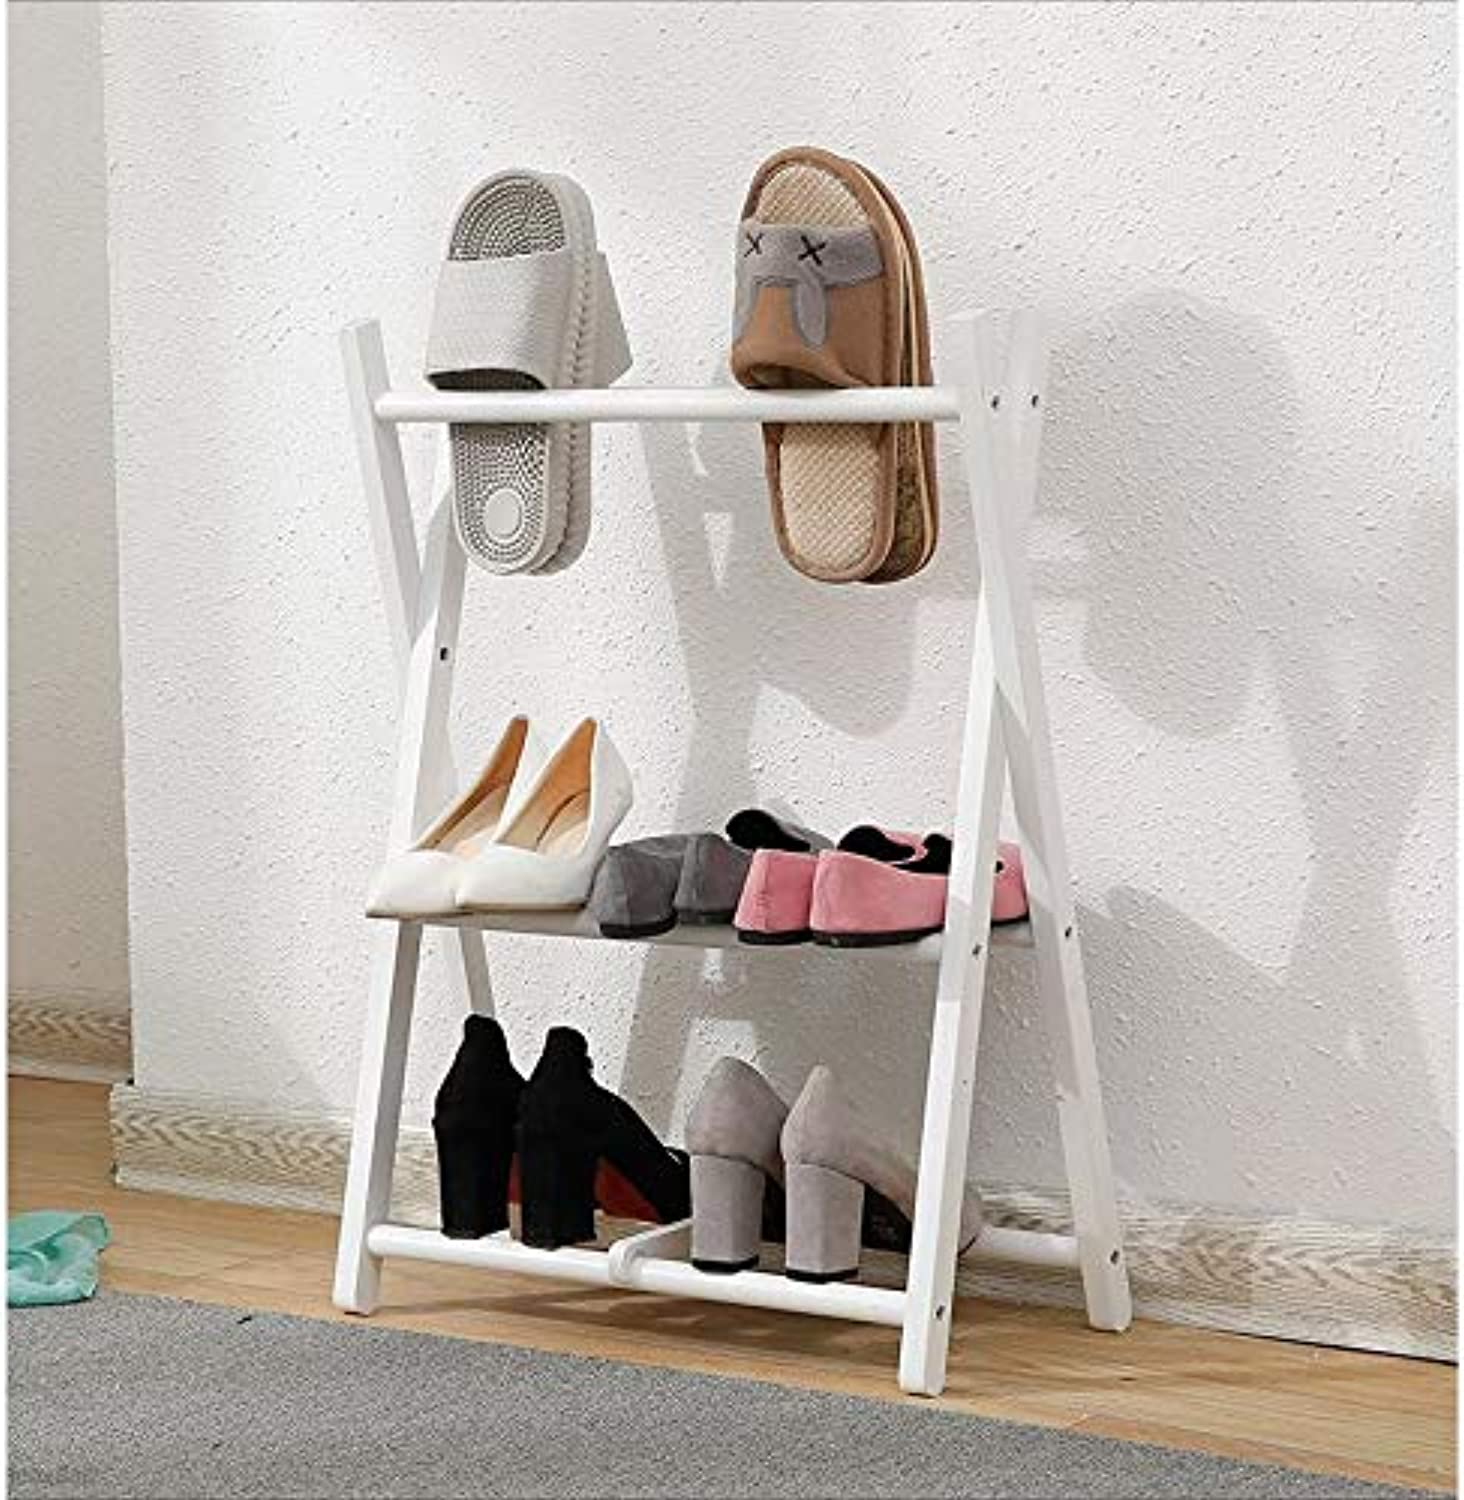 shoes rack Fold shoes Rack Solid Wood Multi-layer Doorway Dorm Room Living Room Slipper Frame Sturdy shoe rack (color   White)